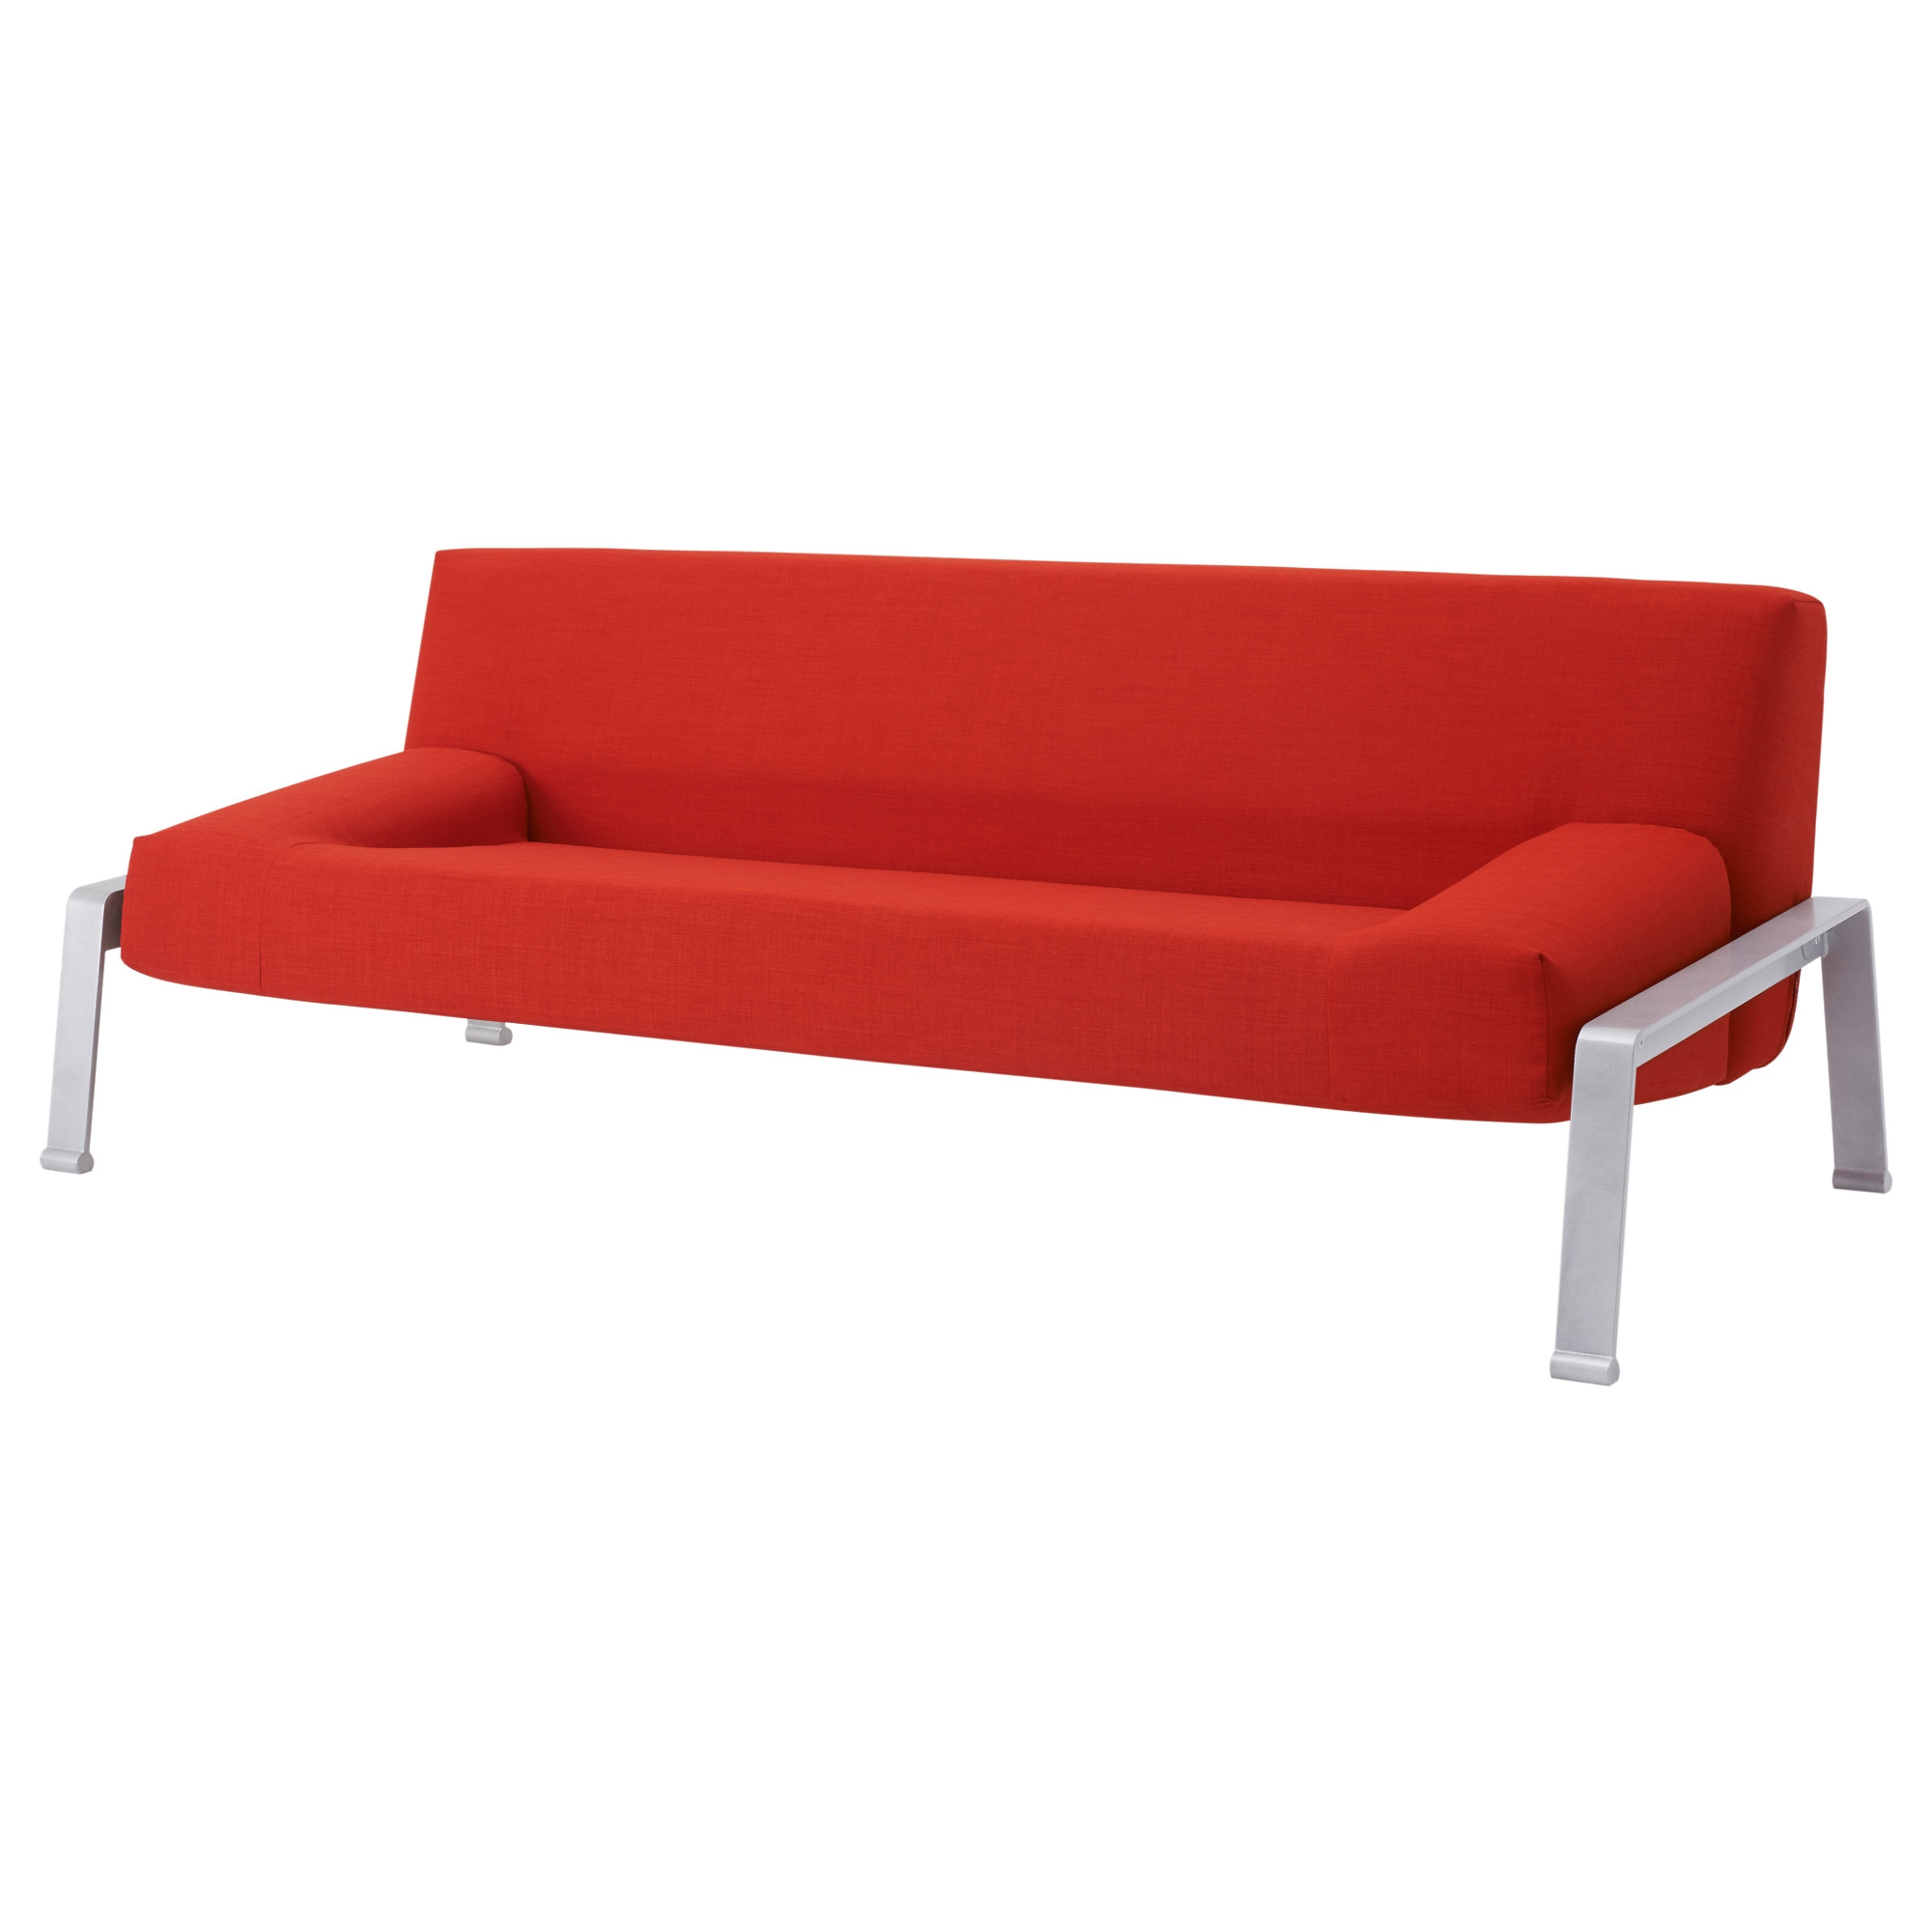 ERSKA sleeper sofa, Skiftebo orange Length, open: 78 3/4